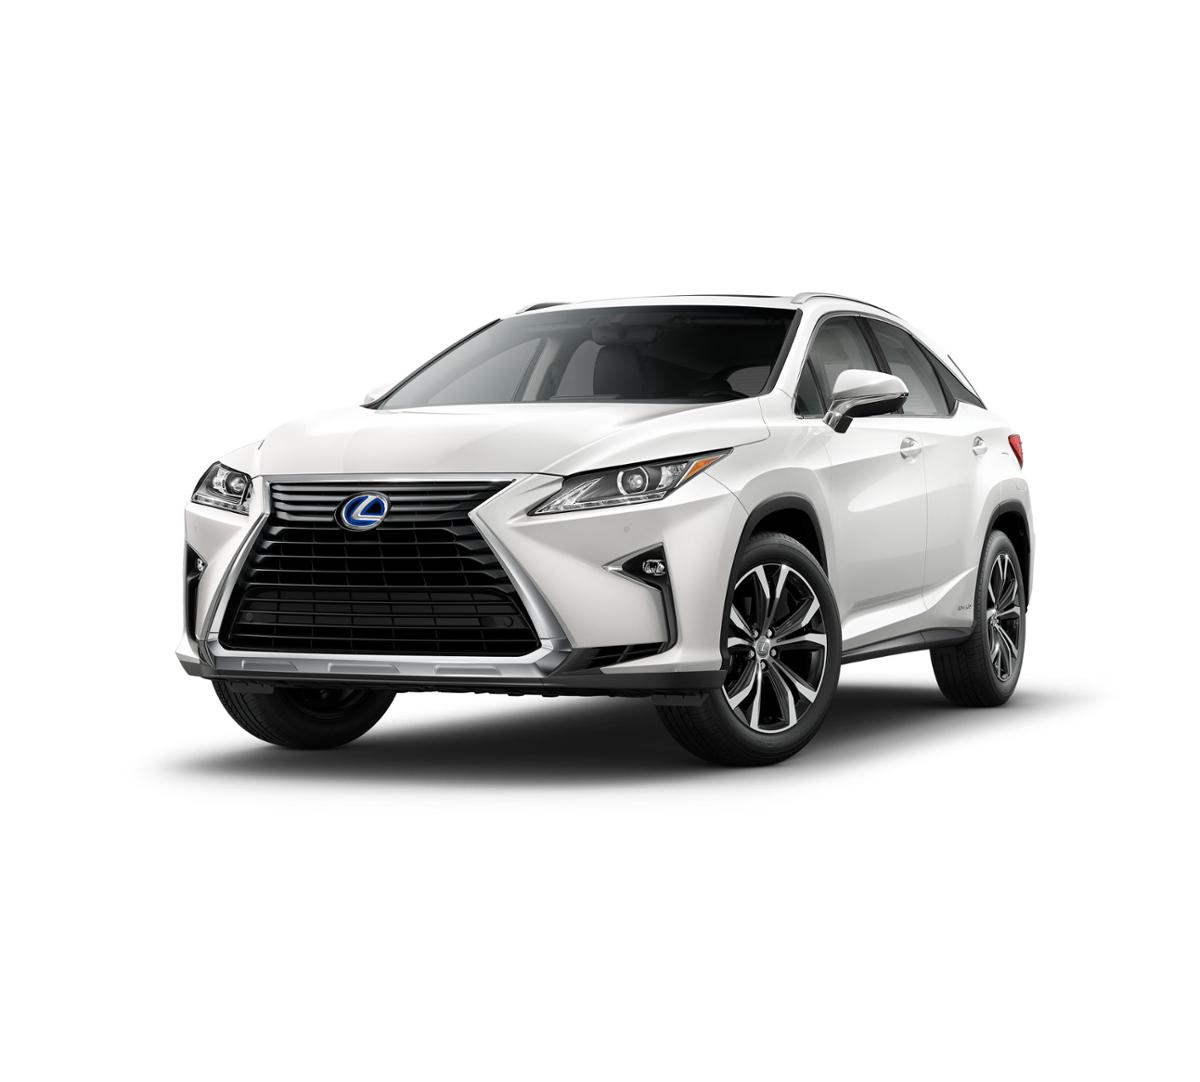 2018 Lexus RX 450h Vehicle Photo in Dallas, TX 75209